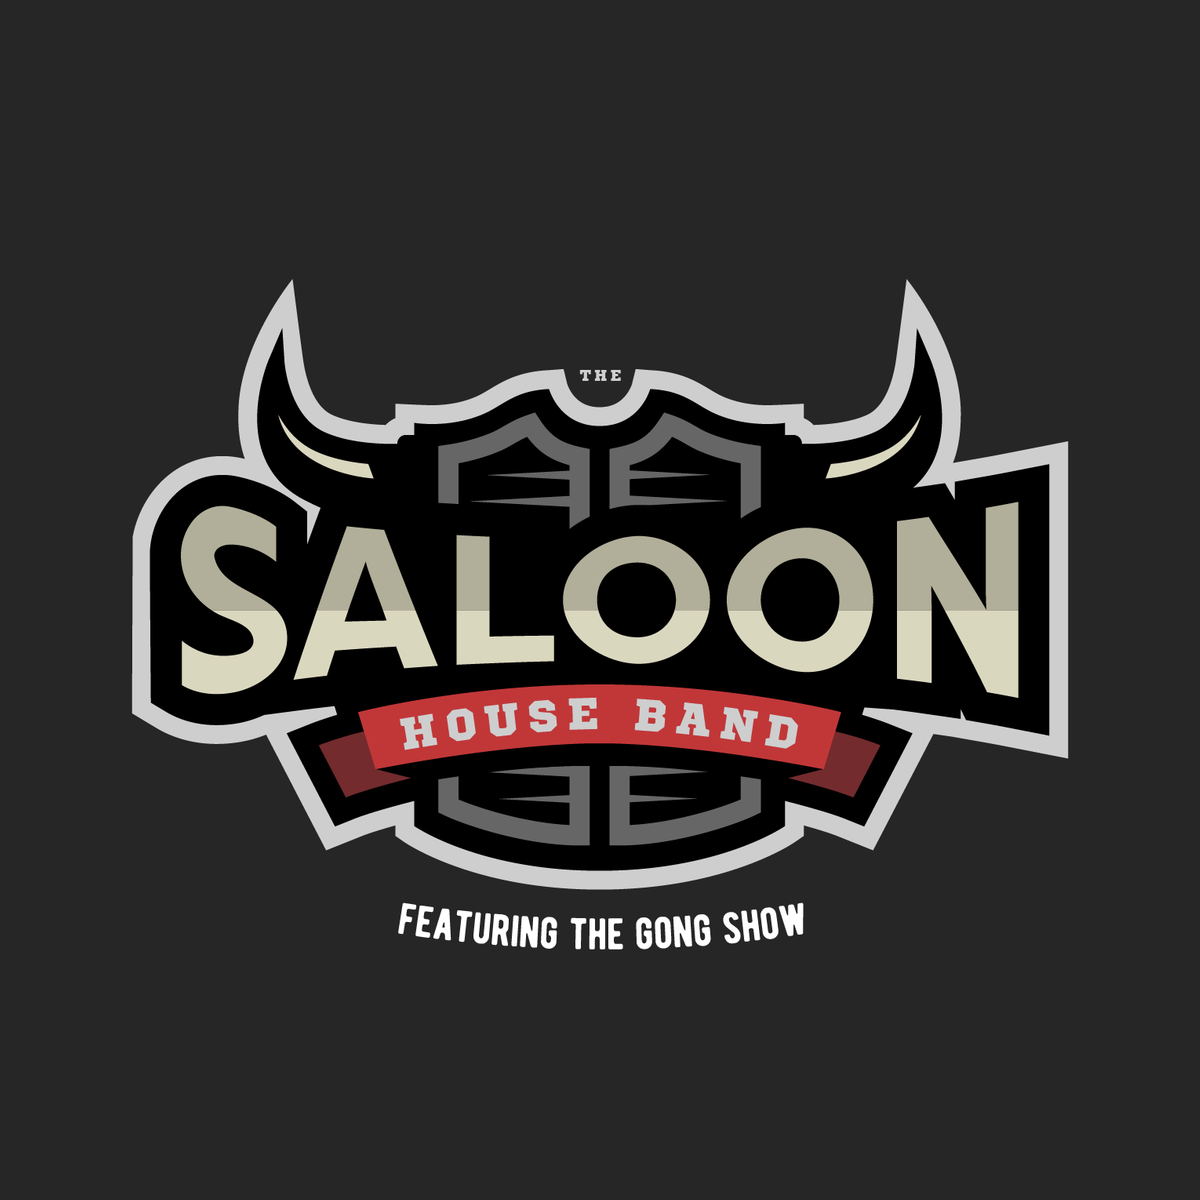 The Saloon House Band featuring The Gong Show